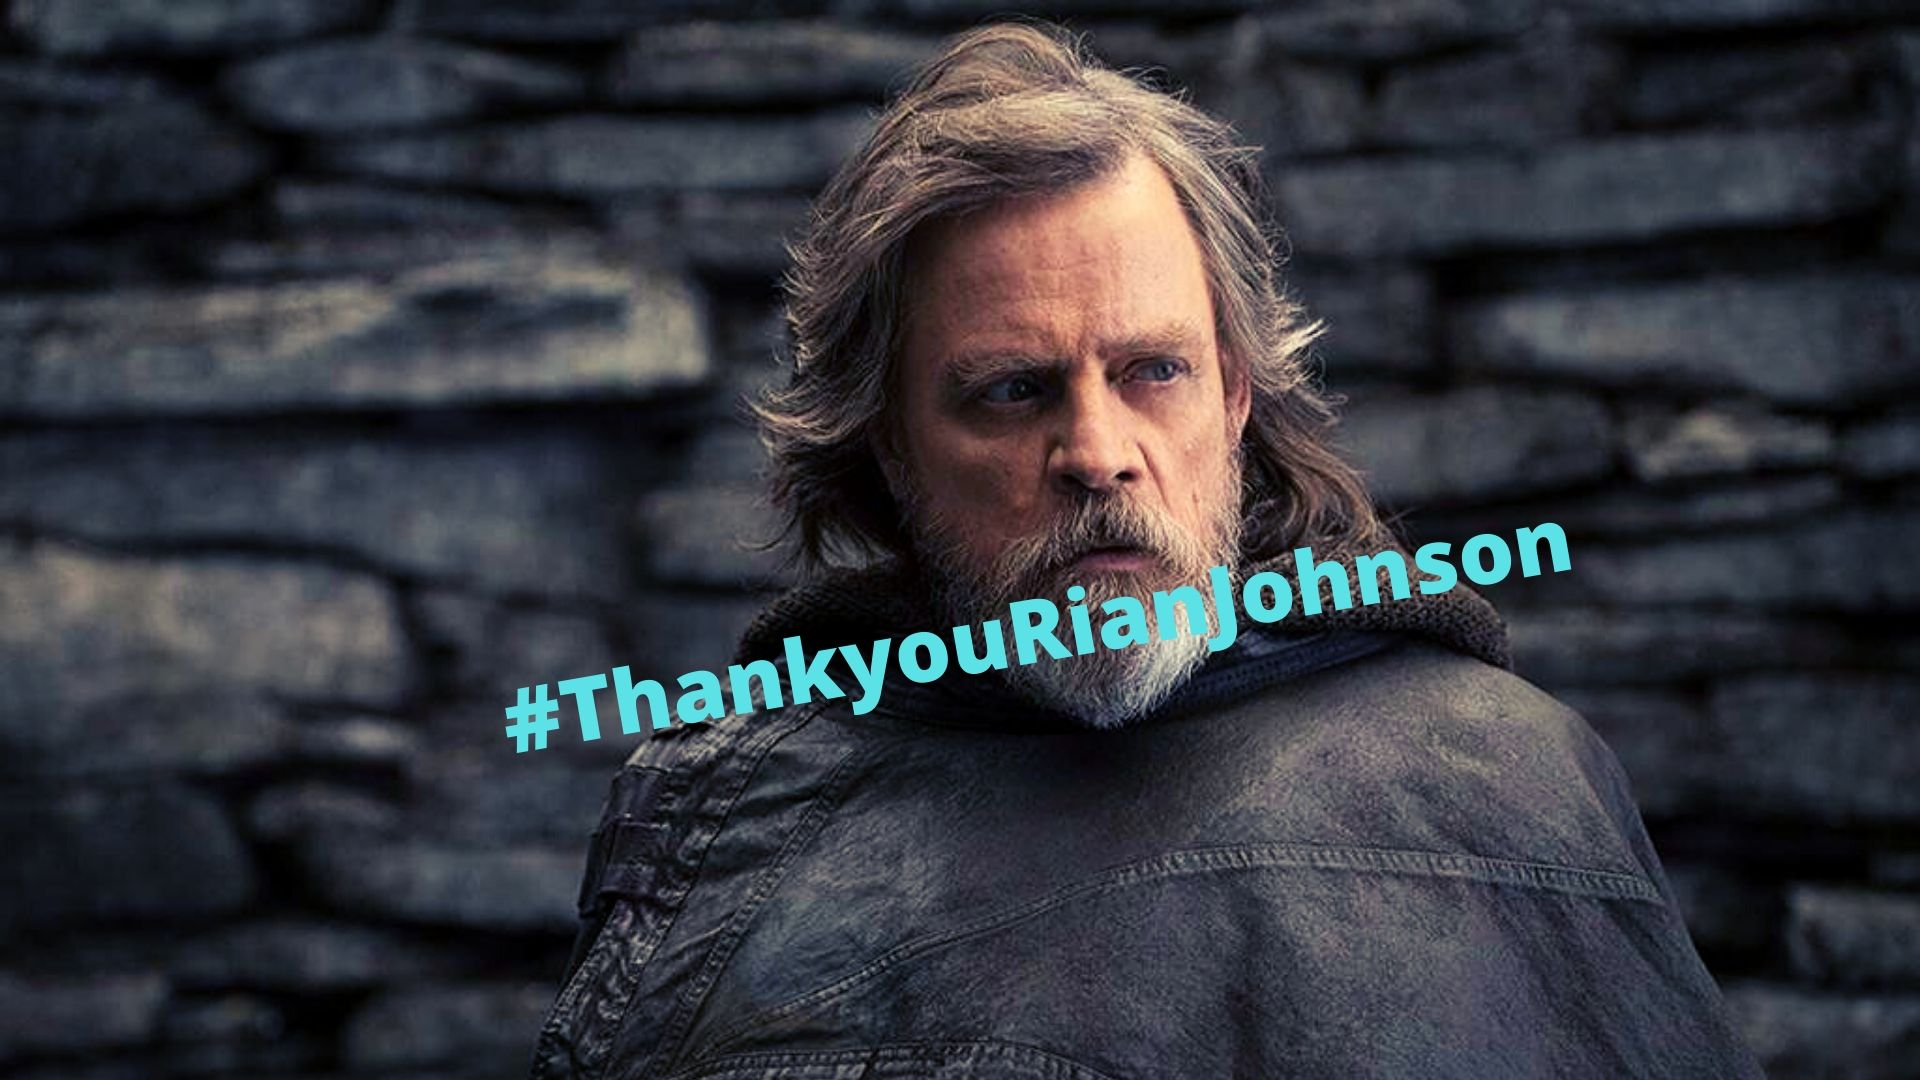 Star Wars: #ThankYouRianJohnson invade Twitter, ecco perché